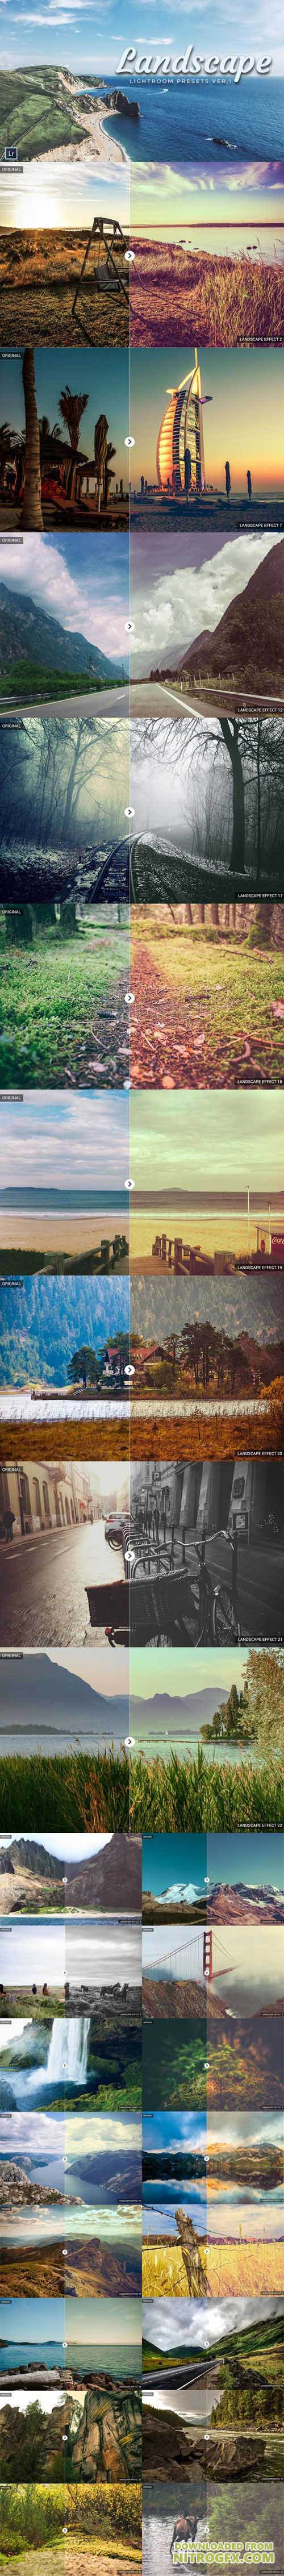 25 Landscape Lightroom Presets [RAW/JPEG]